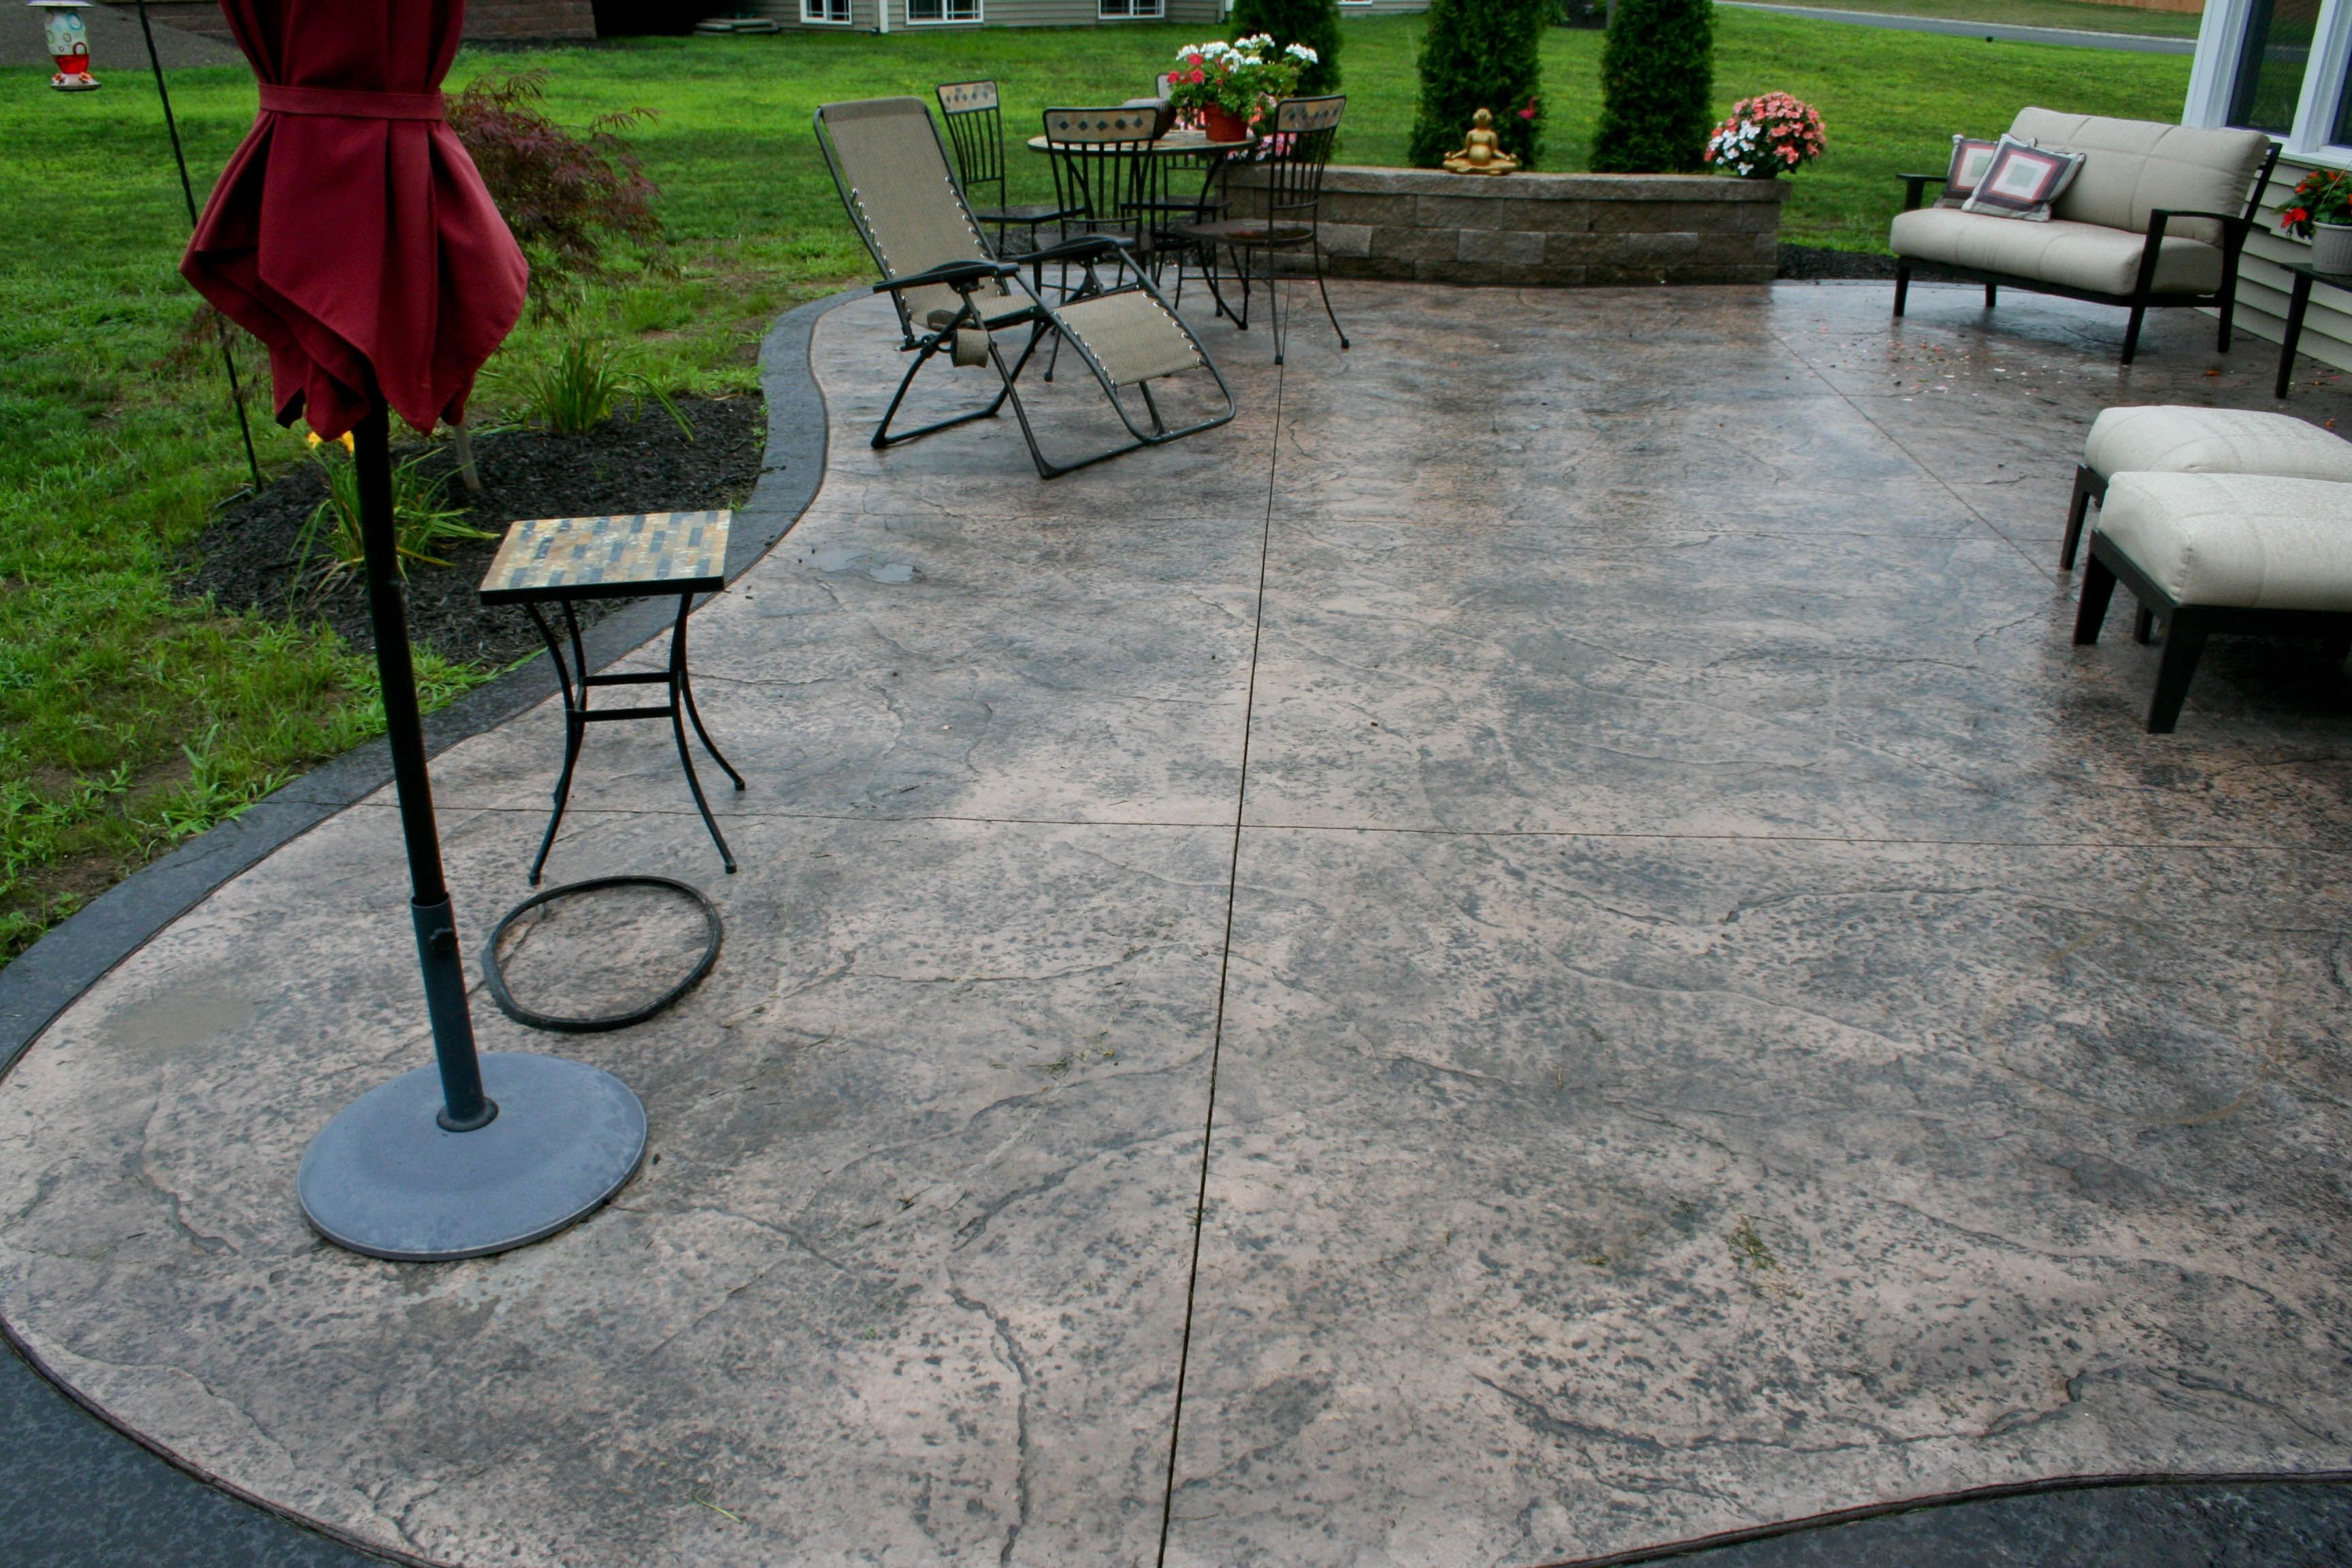 Price For Stamped Concrete Patio Spectacular Stamped Concrete Patio Cost Outdoor Furniture Concrete Patio Designs Poured Concrete Patio Patio Flooring